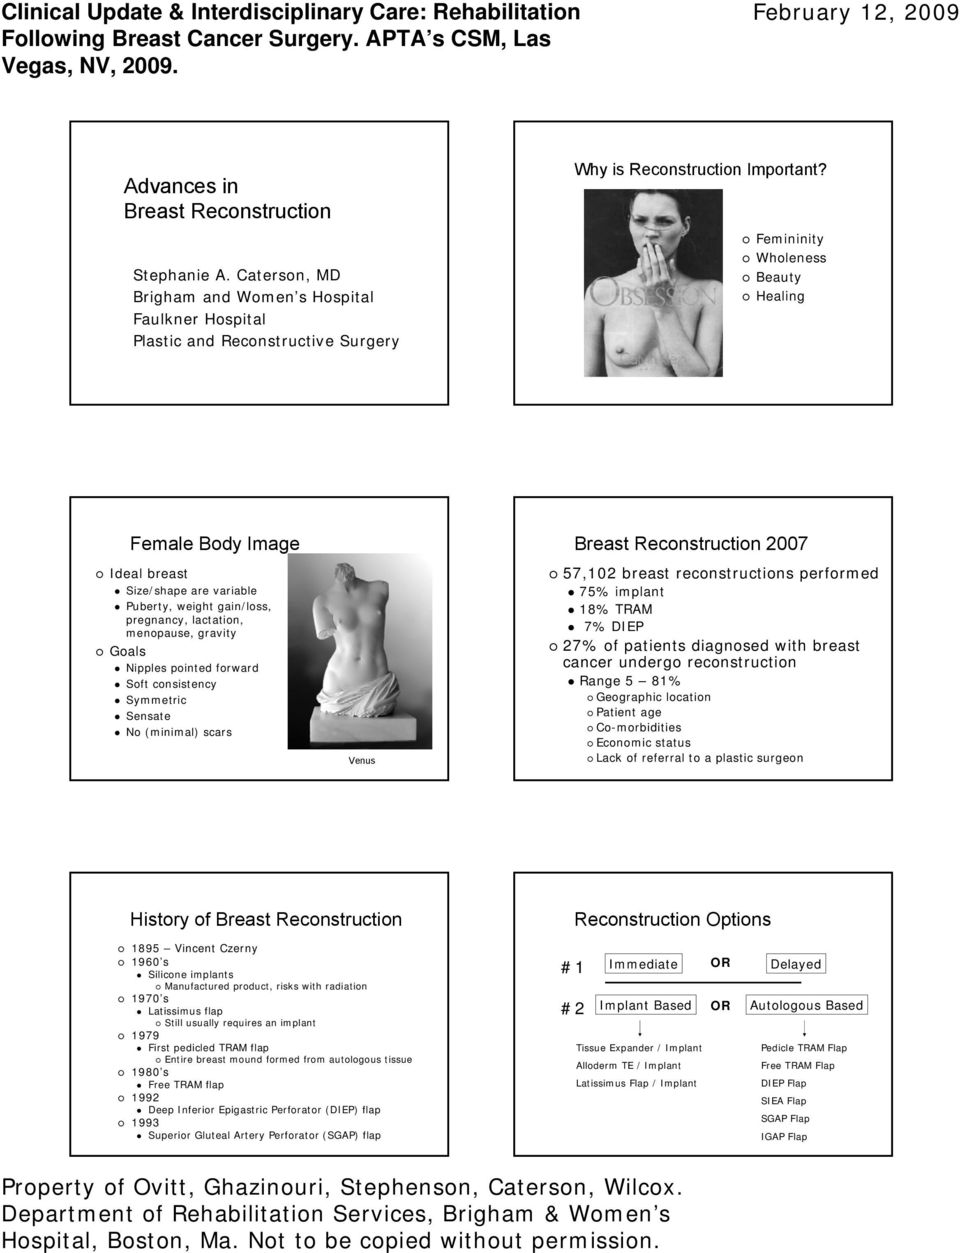 consistency Symmetric Sensate No (minimal) scars Venus Breast Reconstruction 2007 57,102 breast reconstructions performed 75% implant 18% TRAM 7% DIEP 27% of patients diagnosed with breast cancer